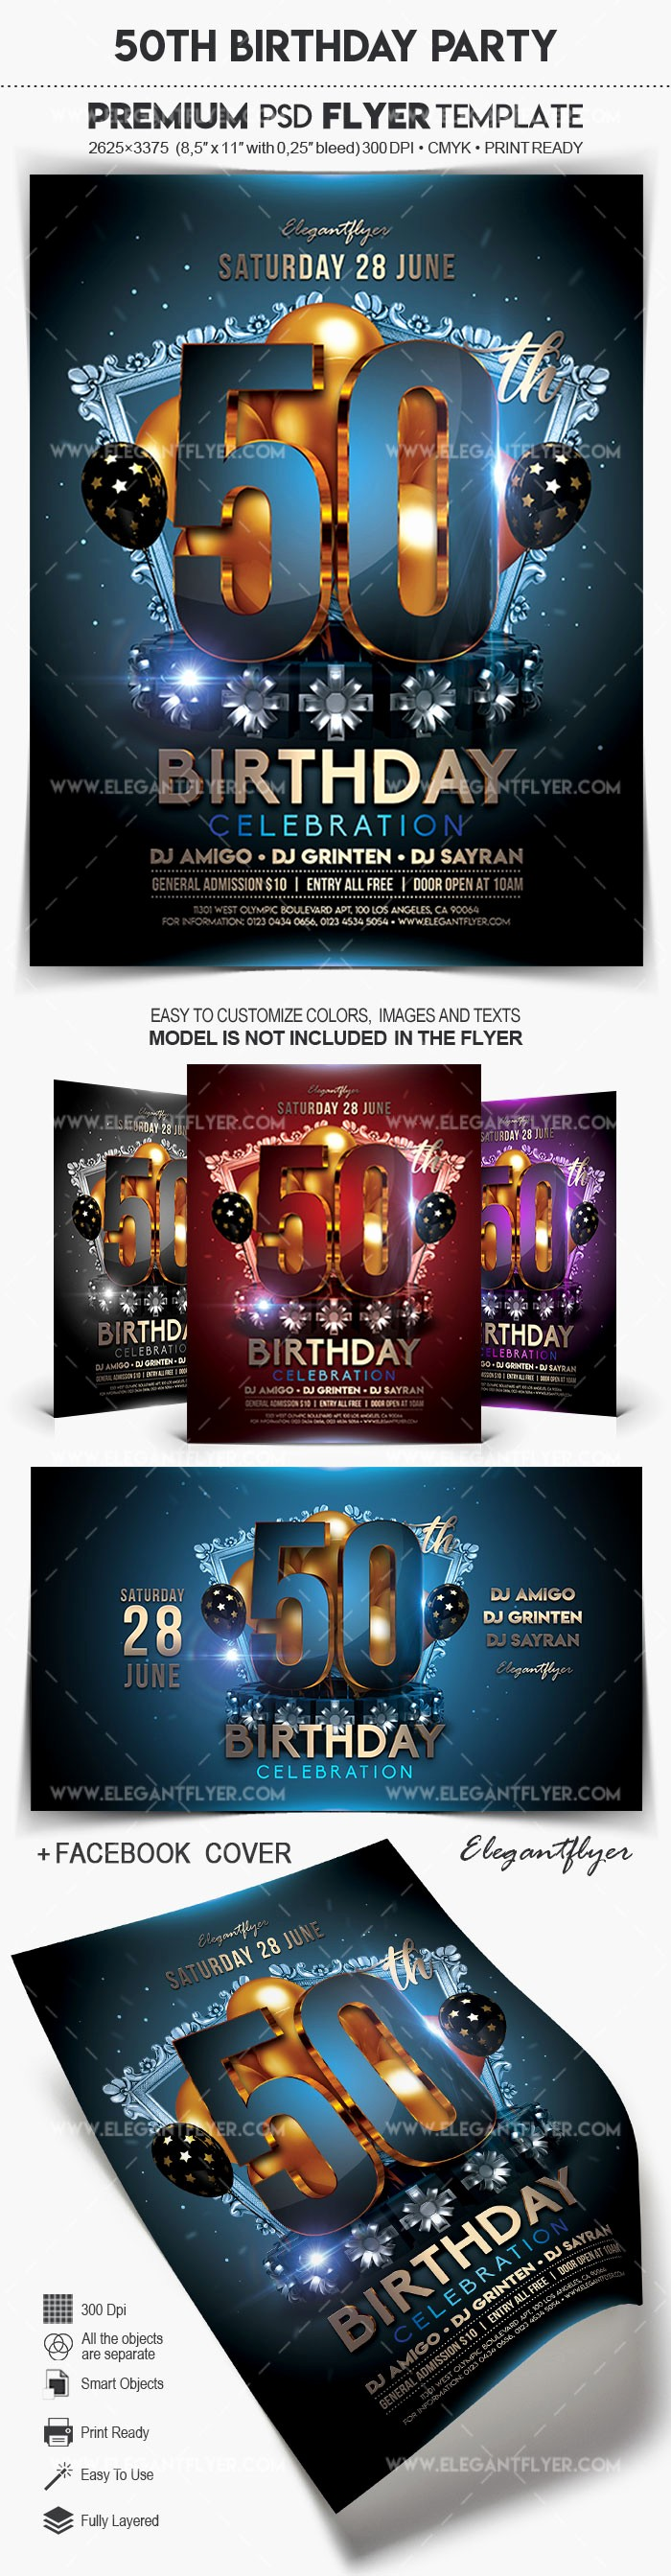 50th Birthday Flyer Template Free Elegant 50th Birthday Party – Flyer Psd Template – by Elegantflyer